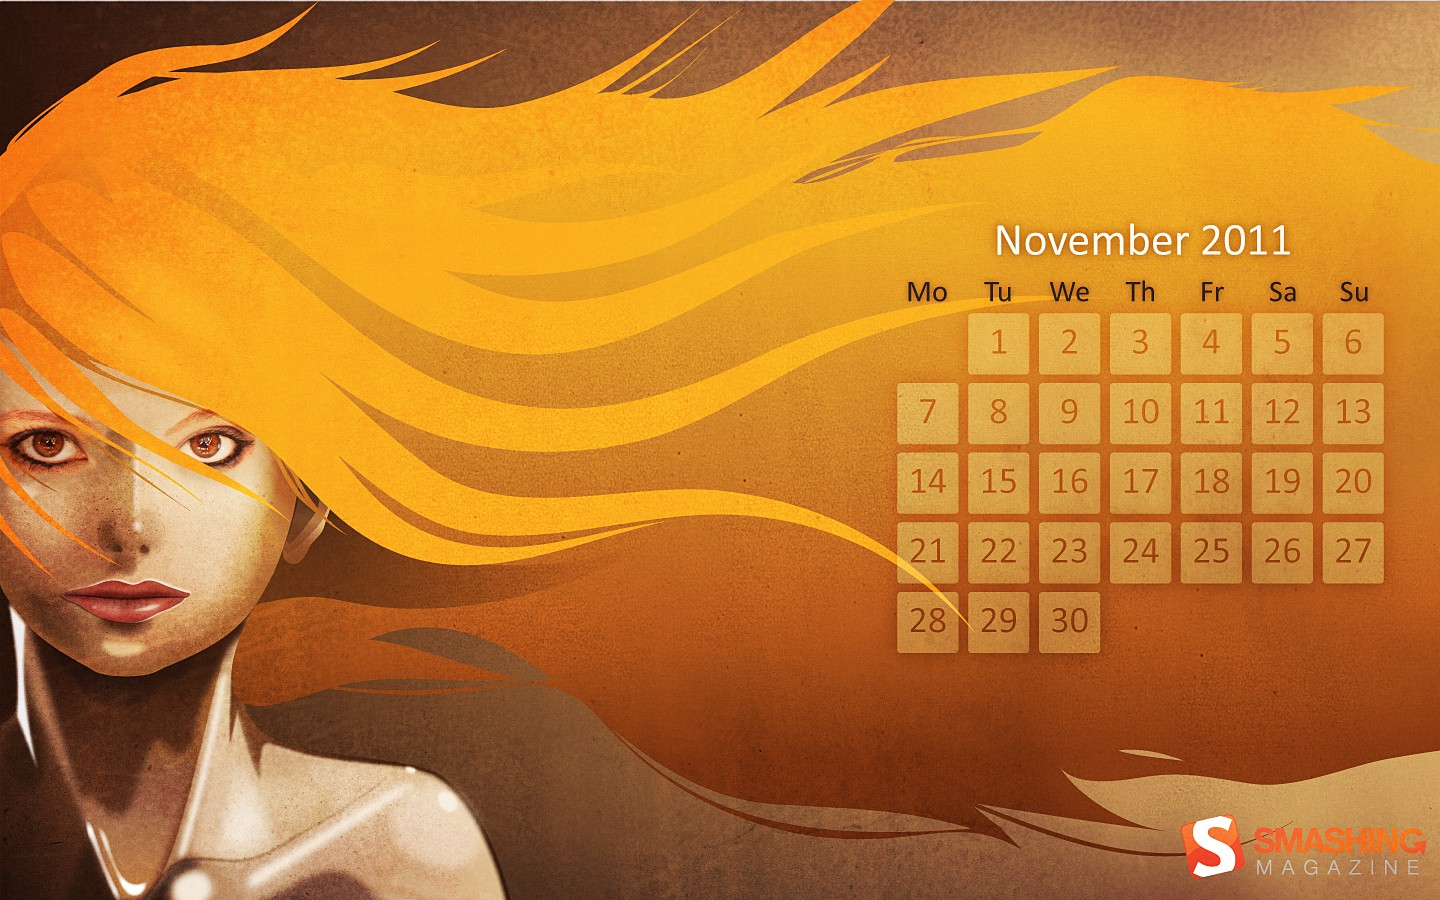 In January Calendar Wallpaper 30881